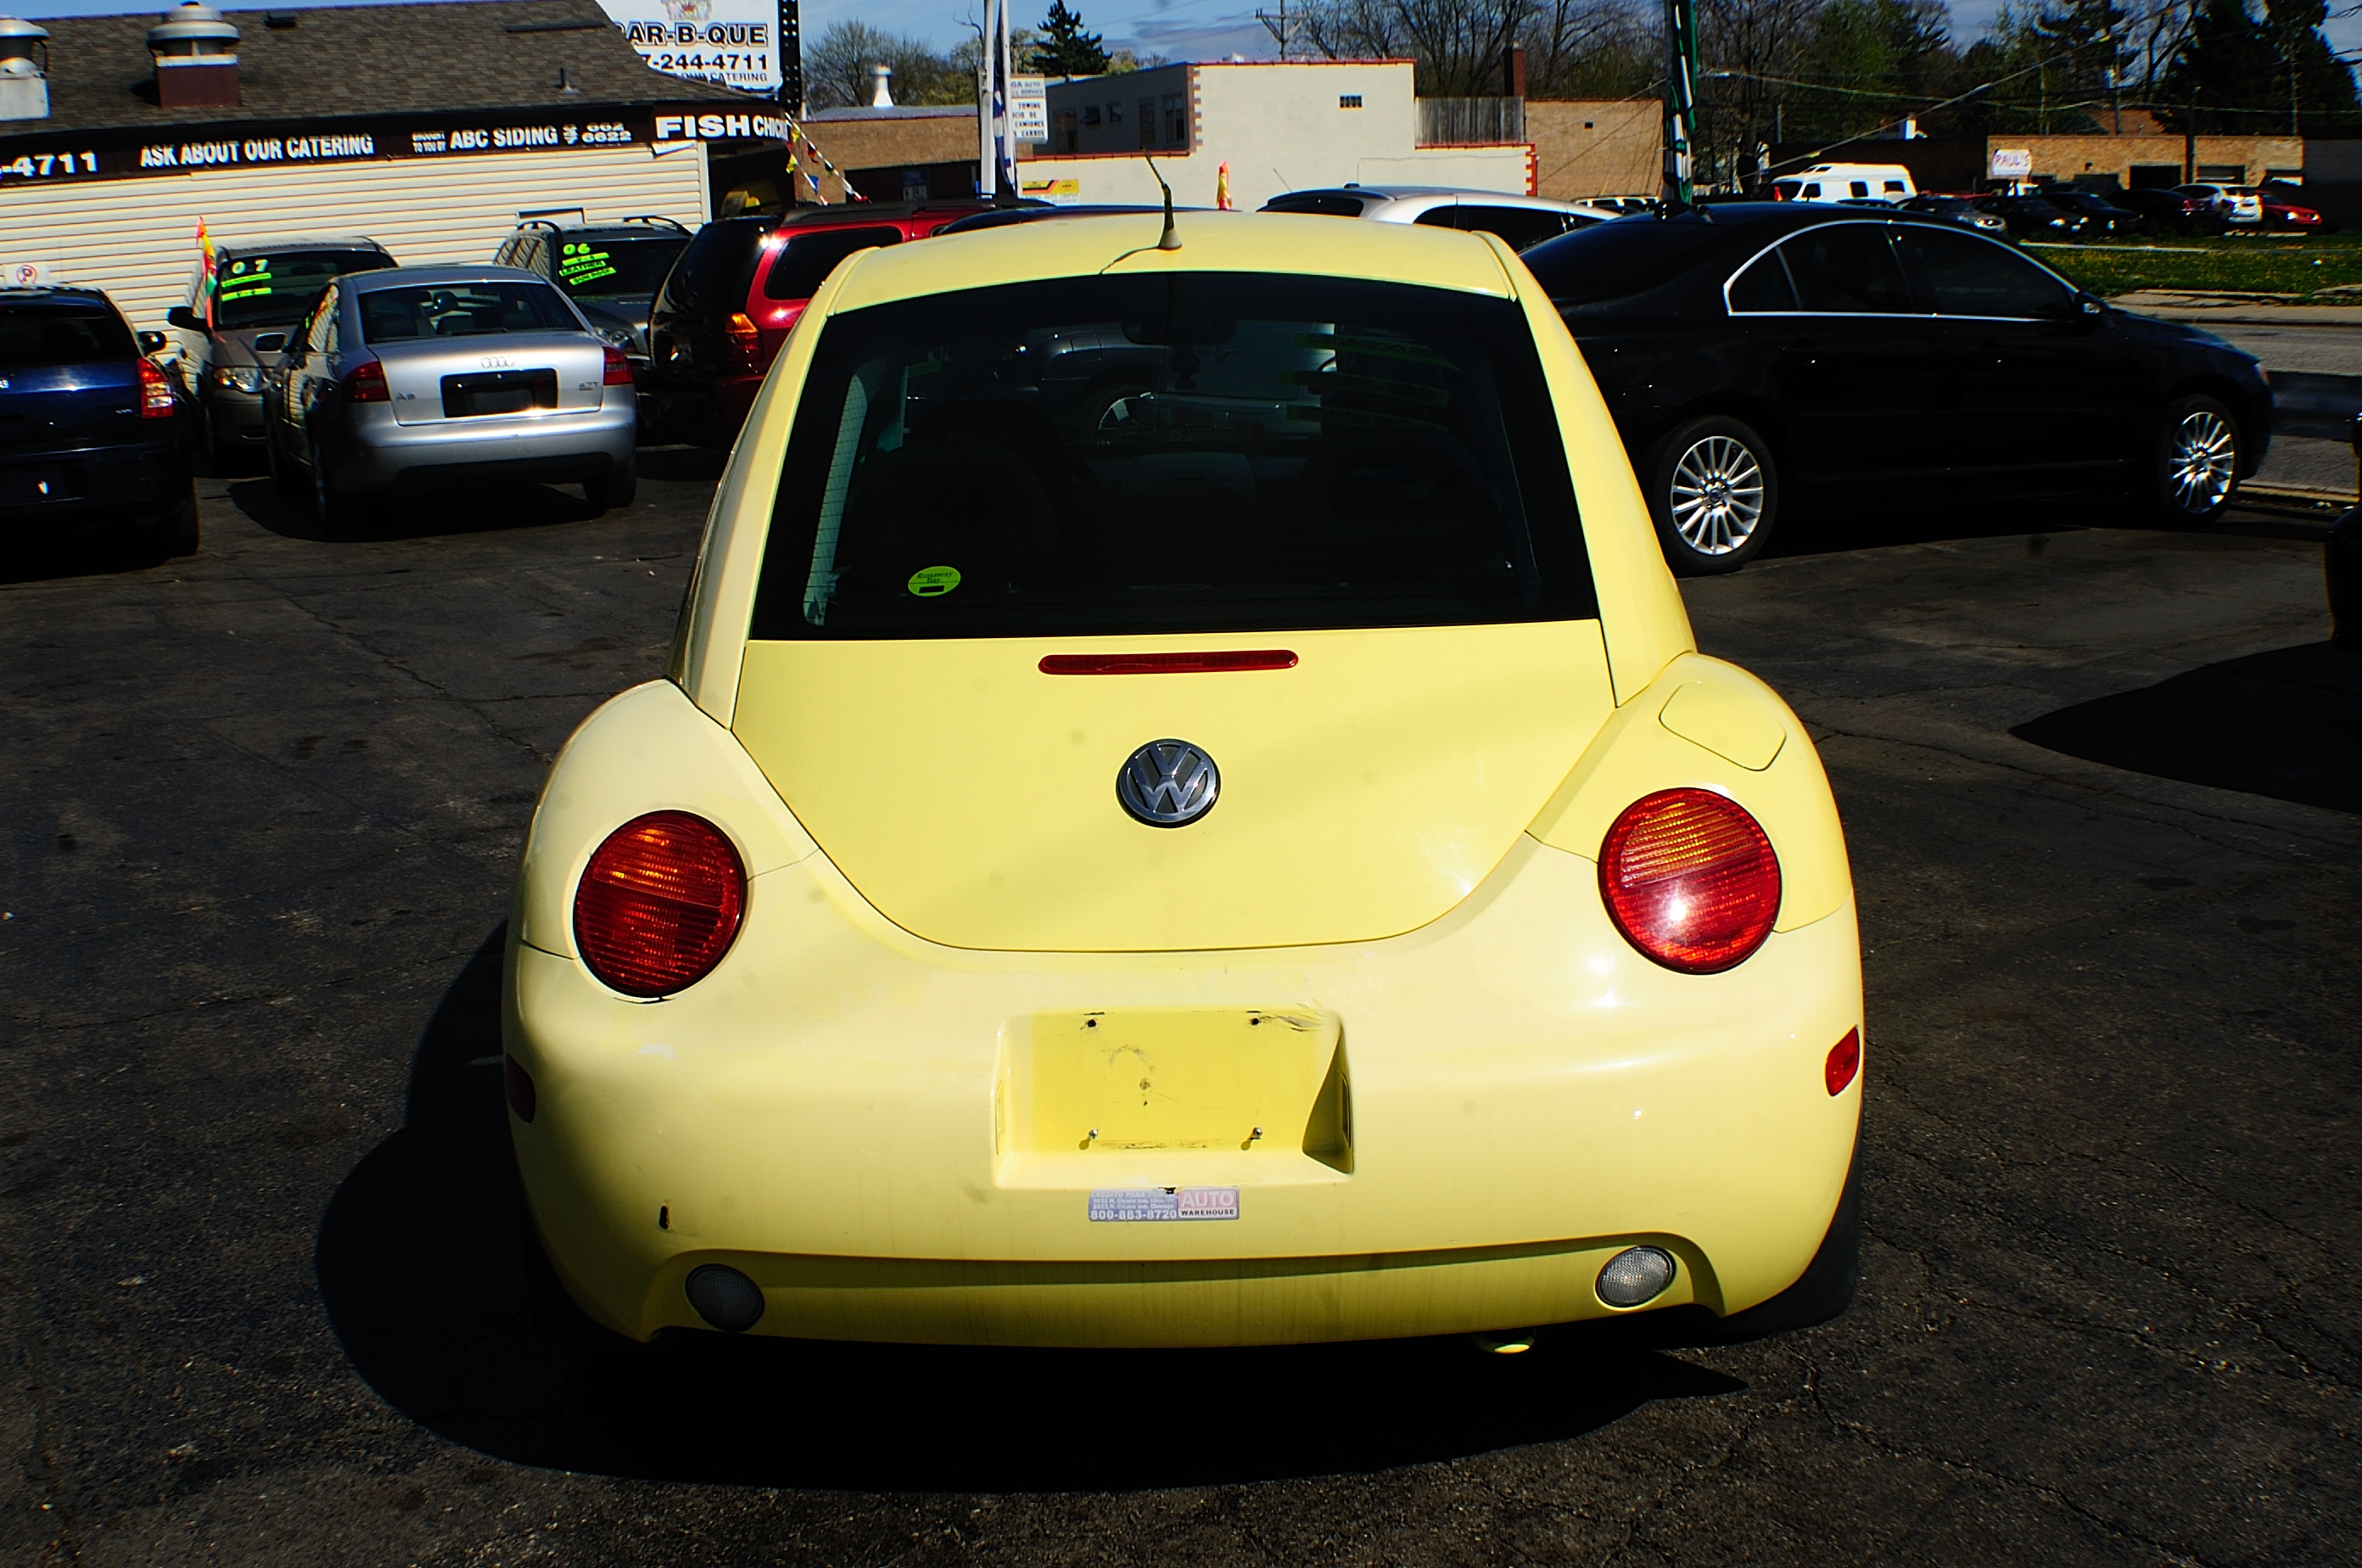 1999 Volkswagen Beetle Yellow Manual used car sale Buffalo Grove Deerfield Fox Lake